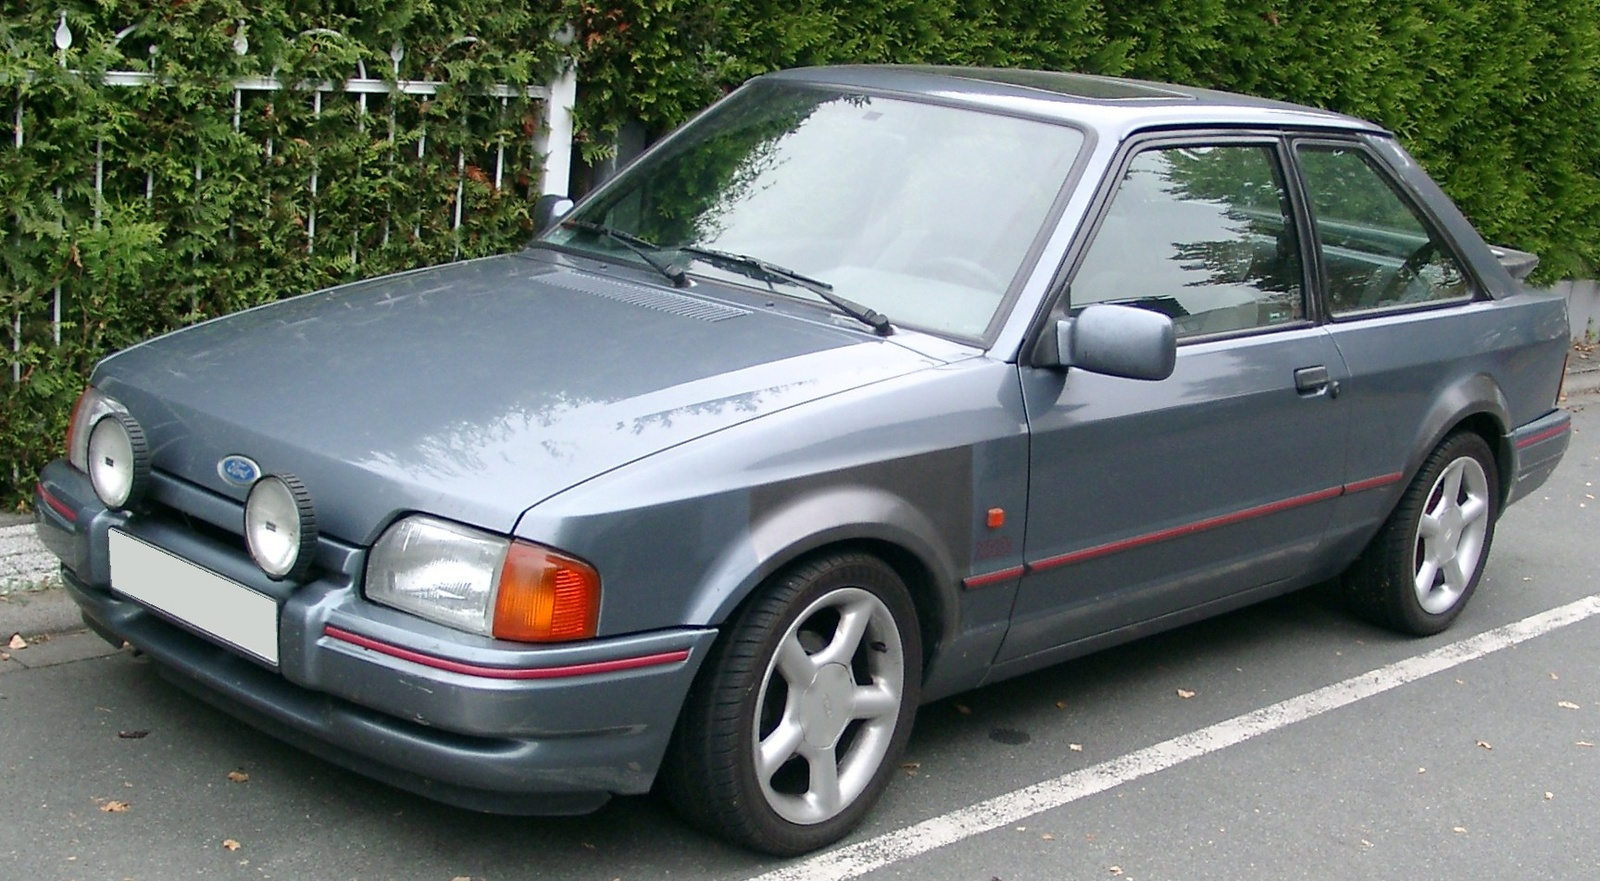 Ford Orion photo 18